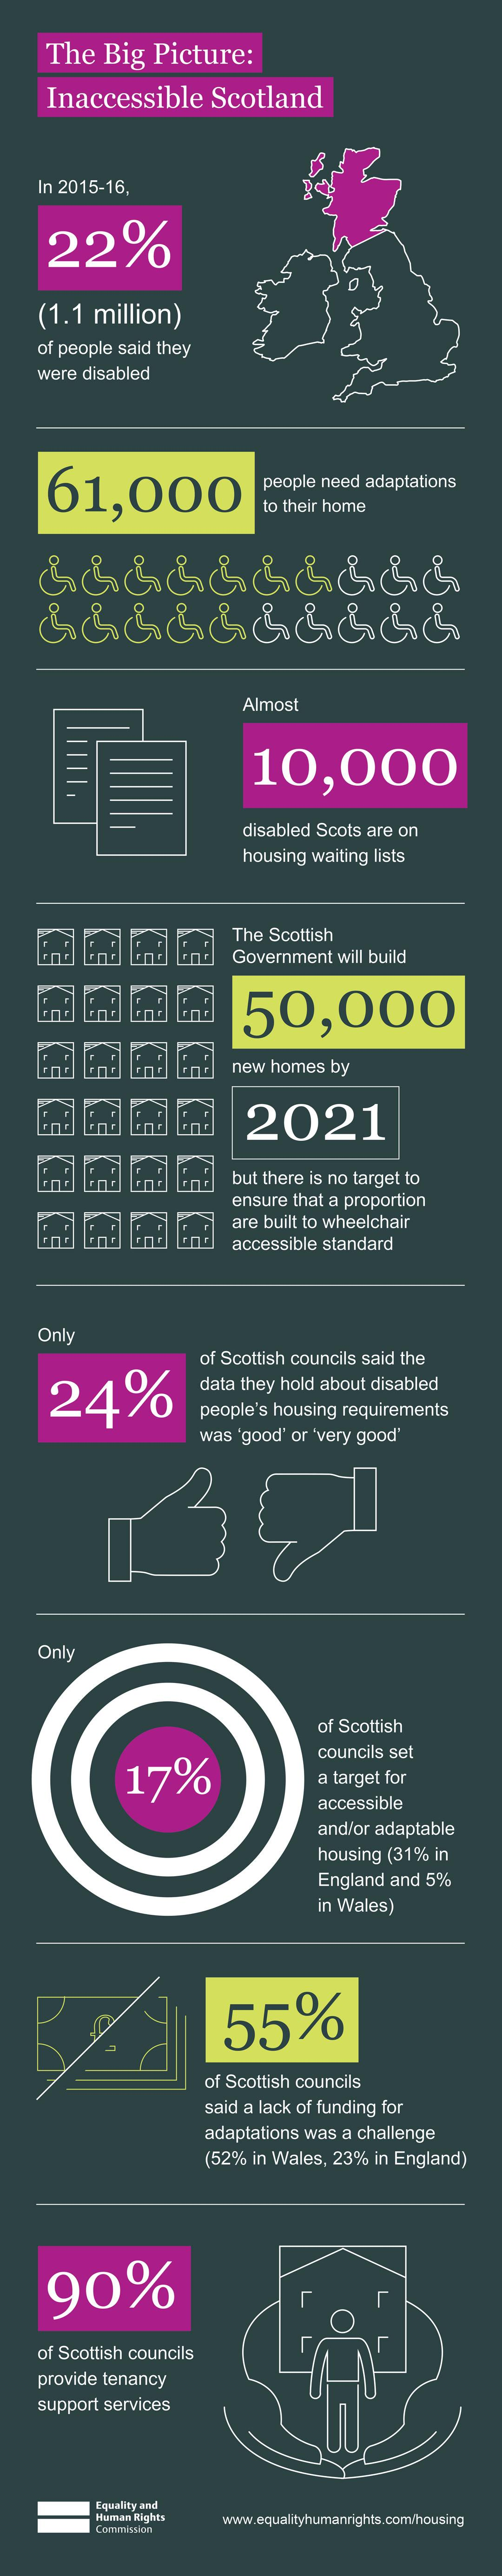 infographic with statistics showing how the government and councils are responding to the need for accessible housing